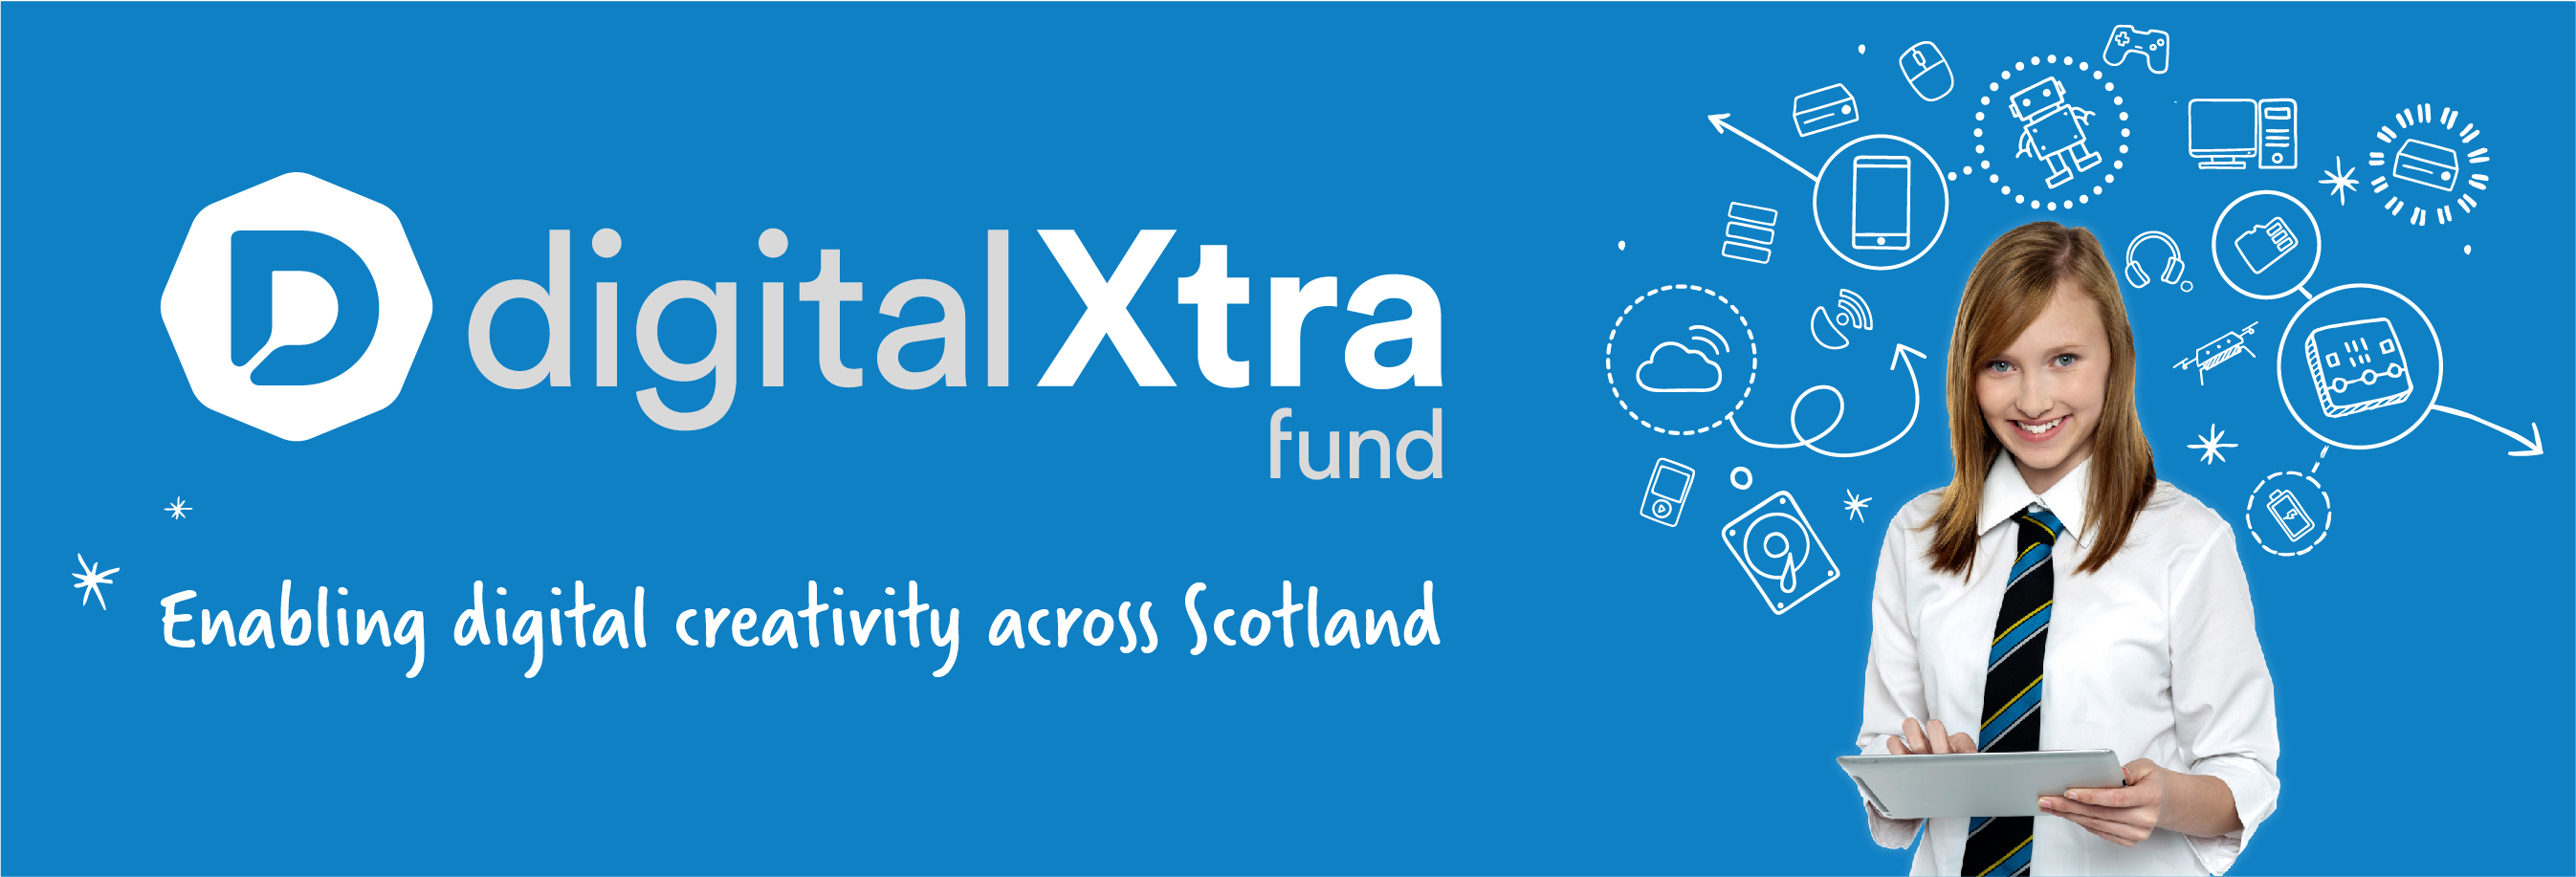 Digital Xtra Fund response to Covid-19 Outbreak